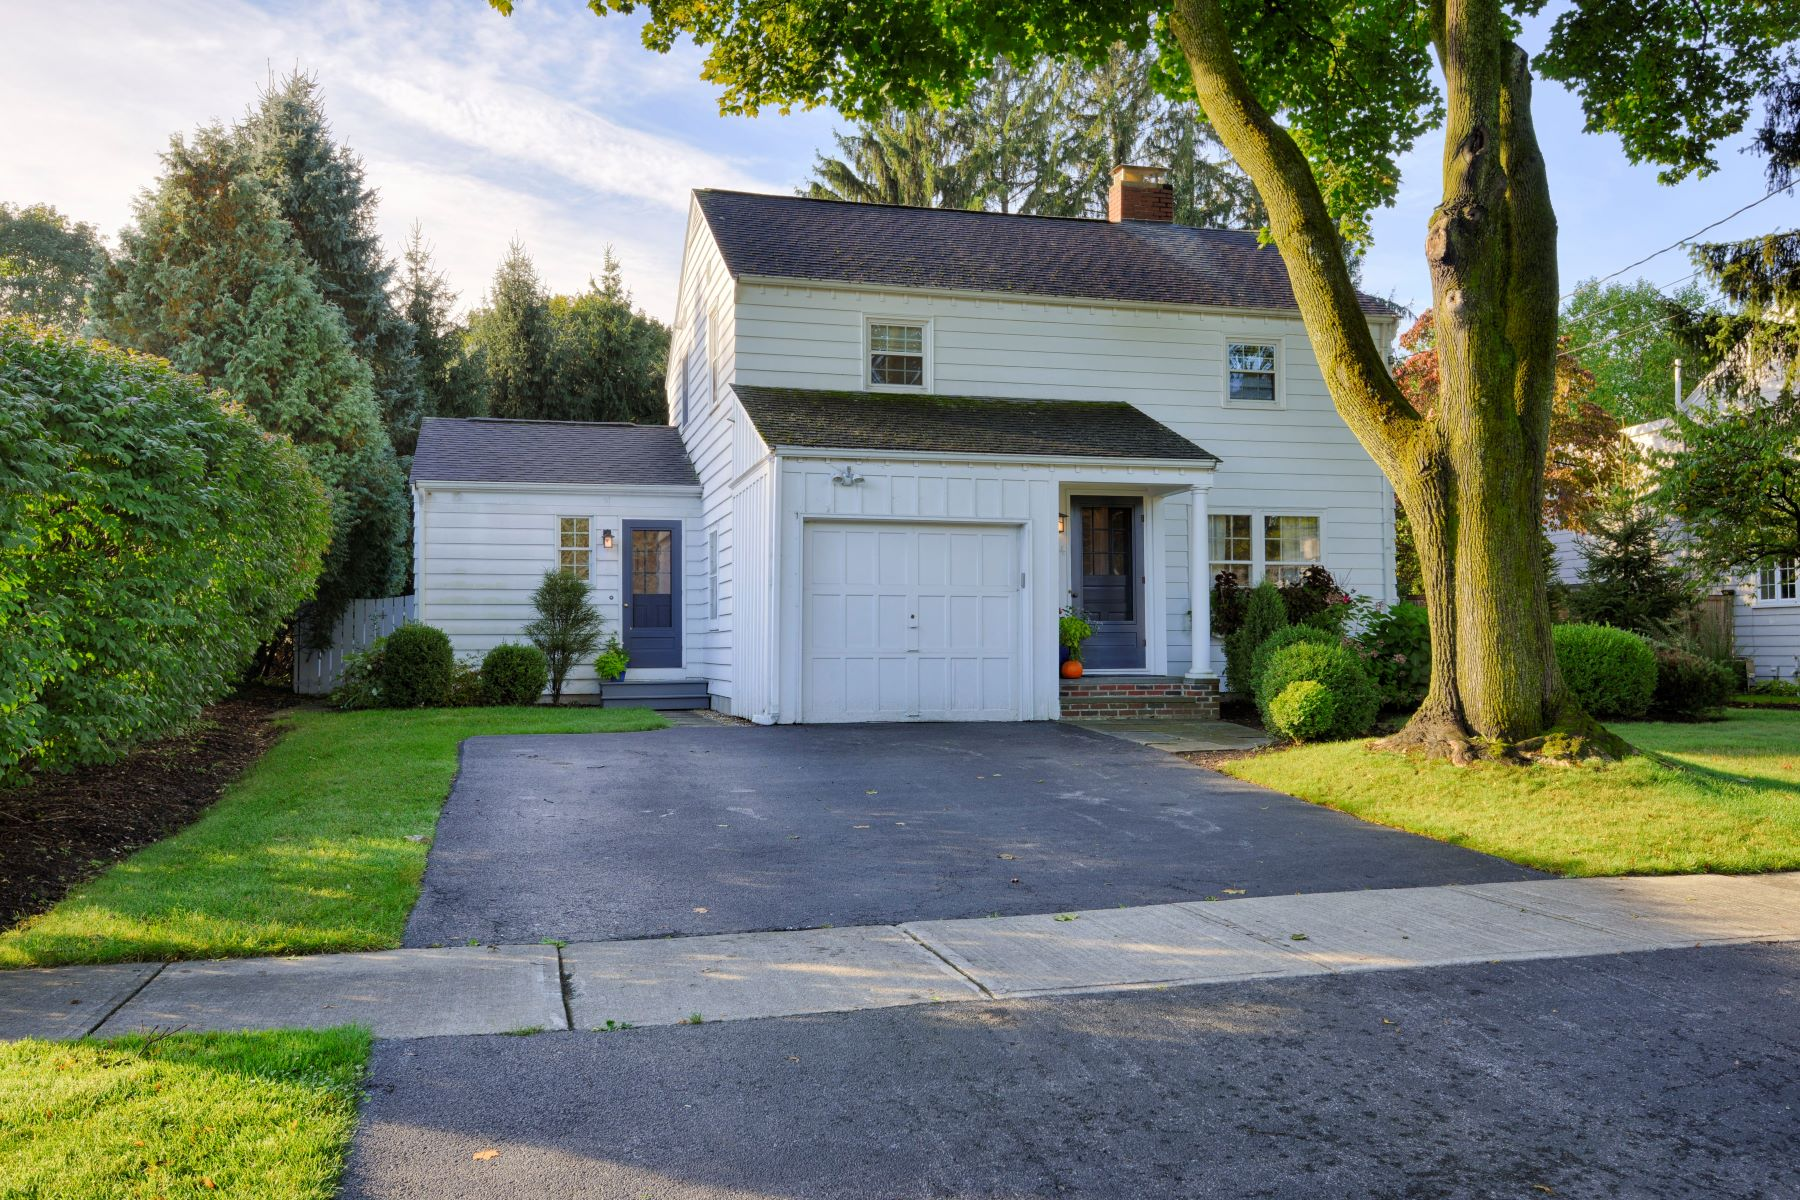 Single Family Homes for Sale at Charming Home in the Village 604 Oakwood Street Manlius, New York 13066 United States